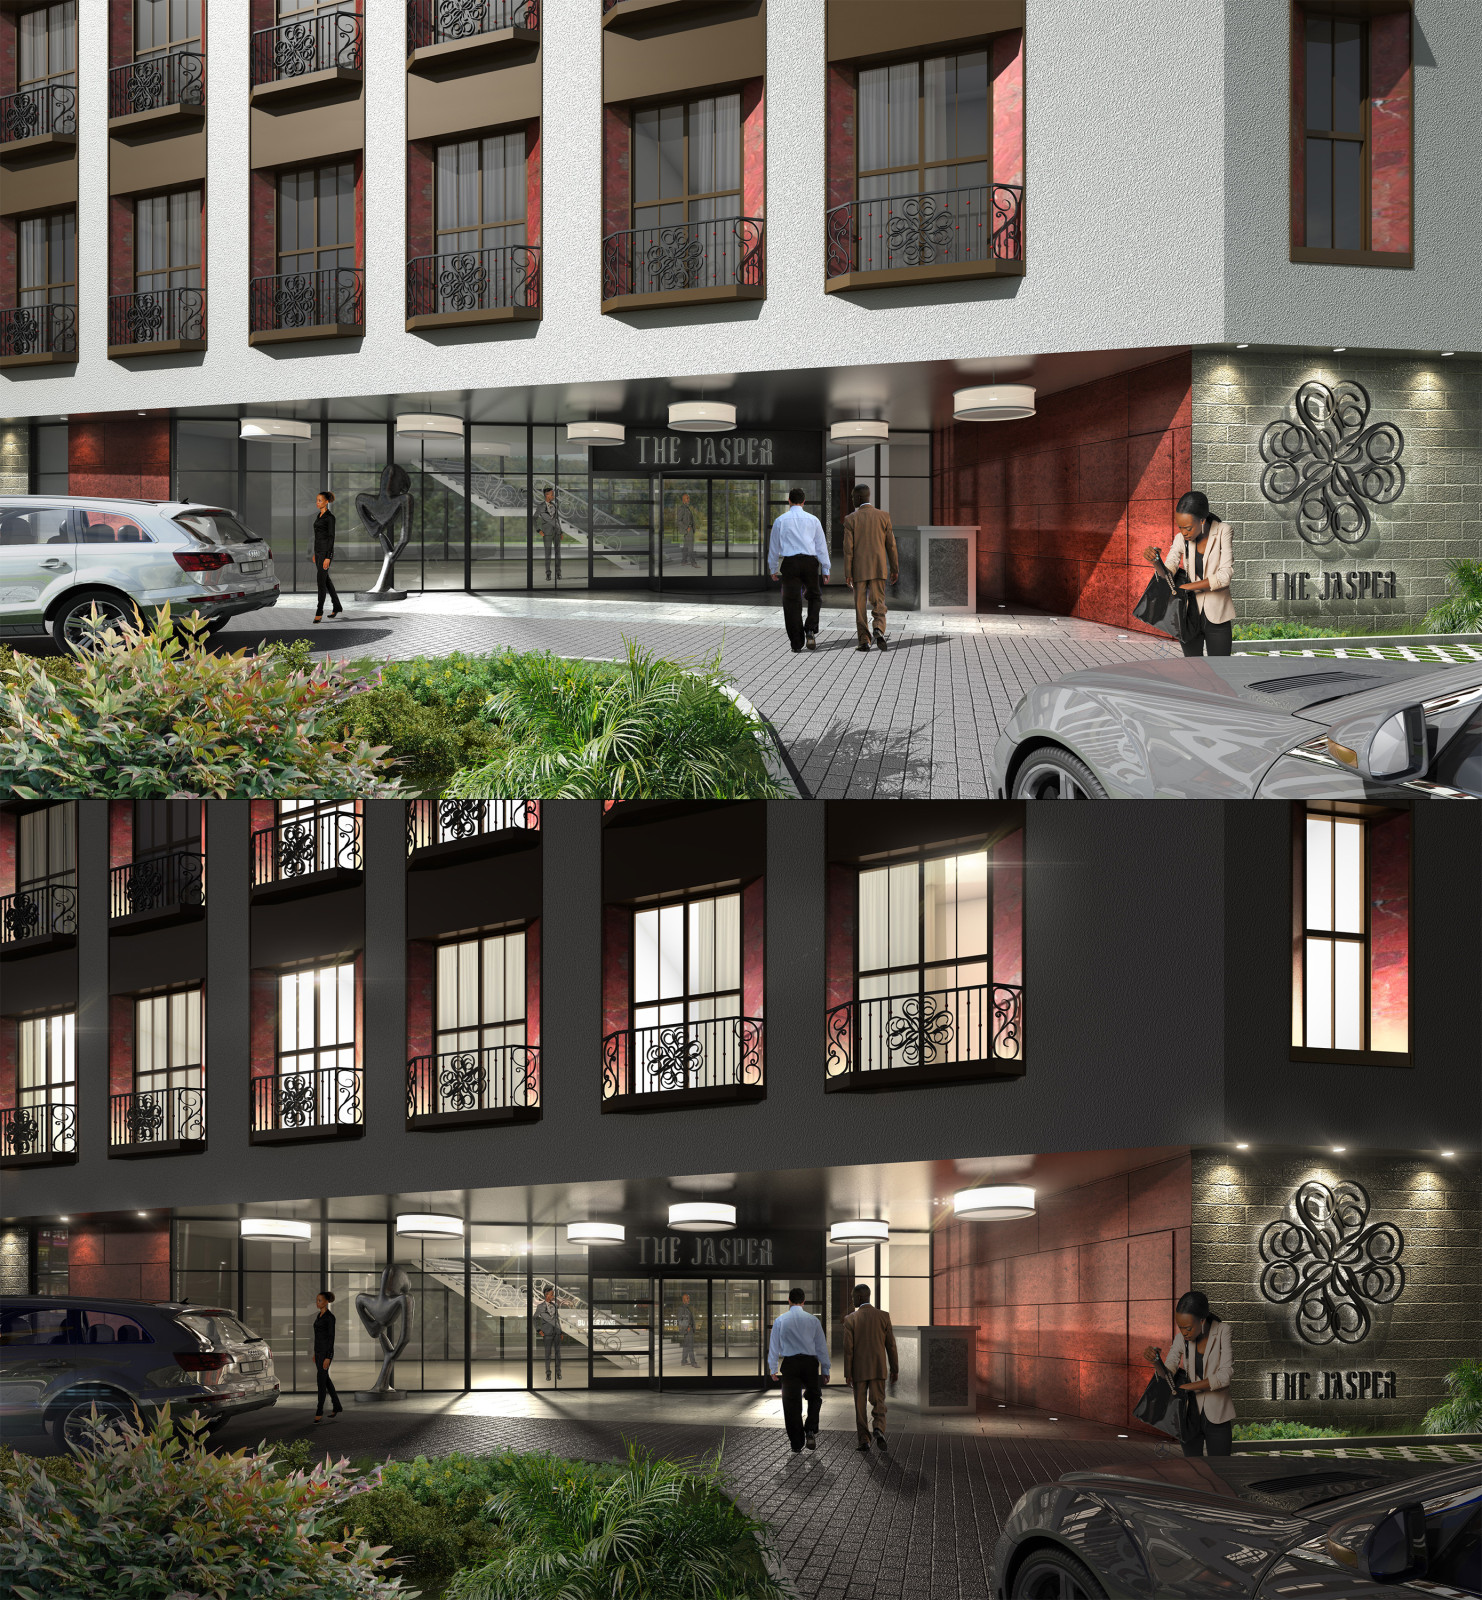 The Jasper Hotel - Entrance Design